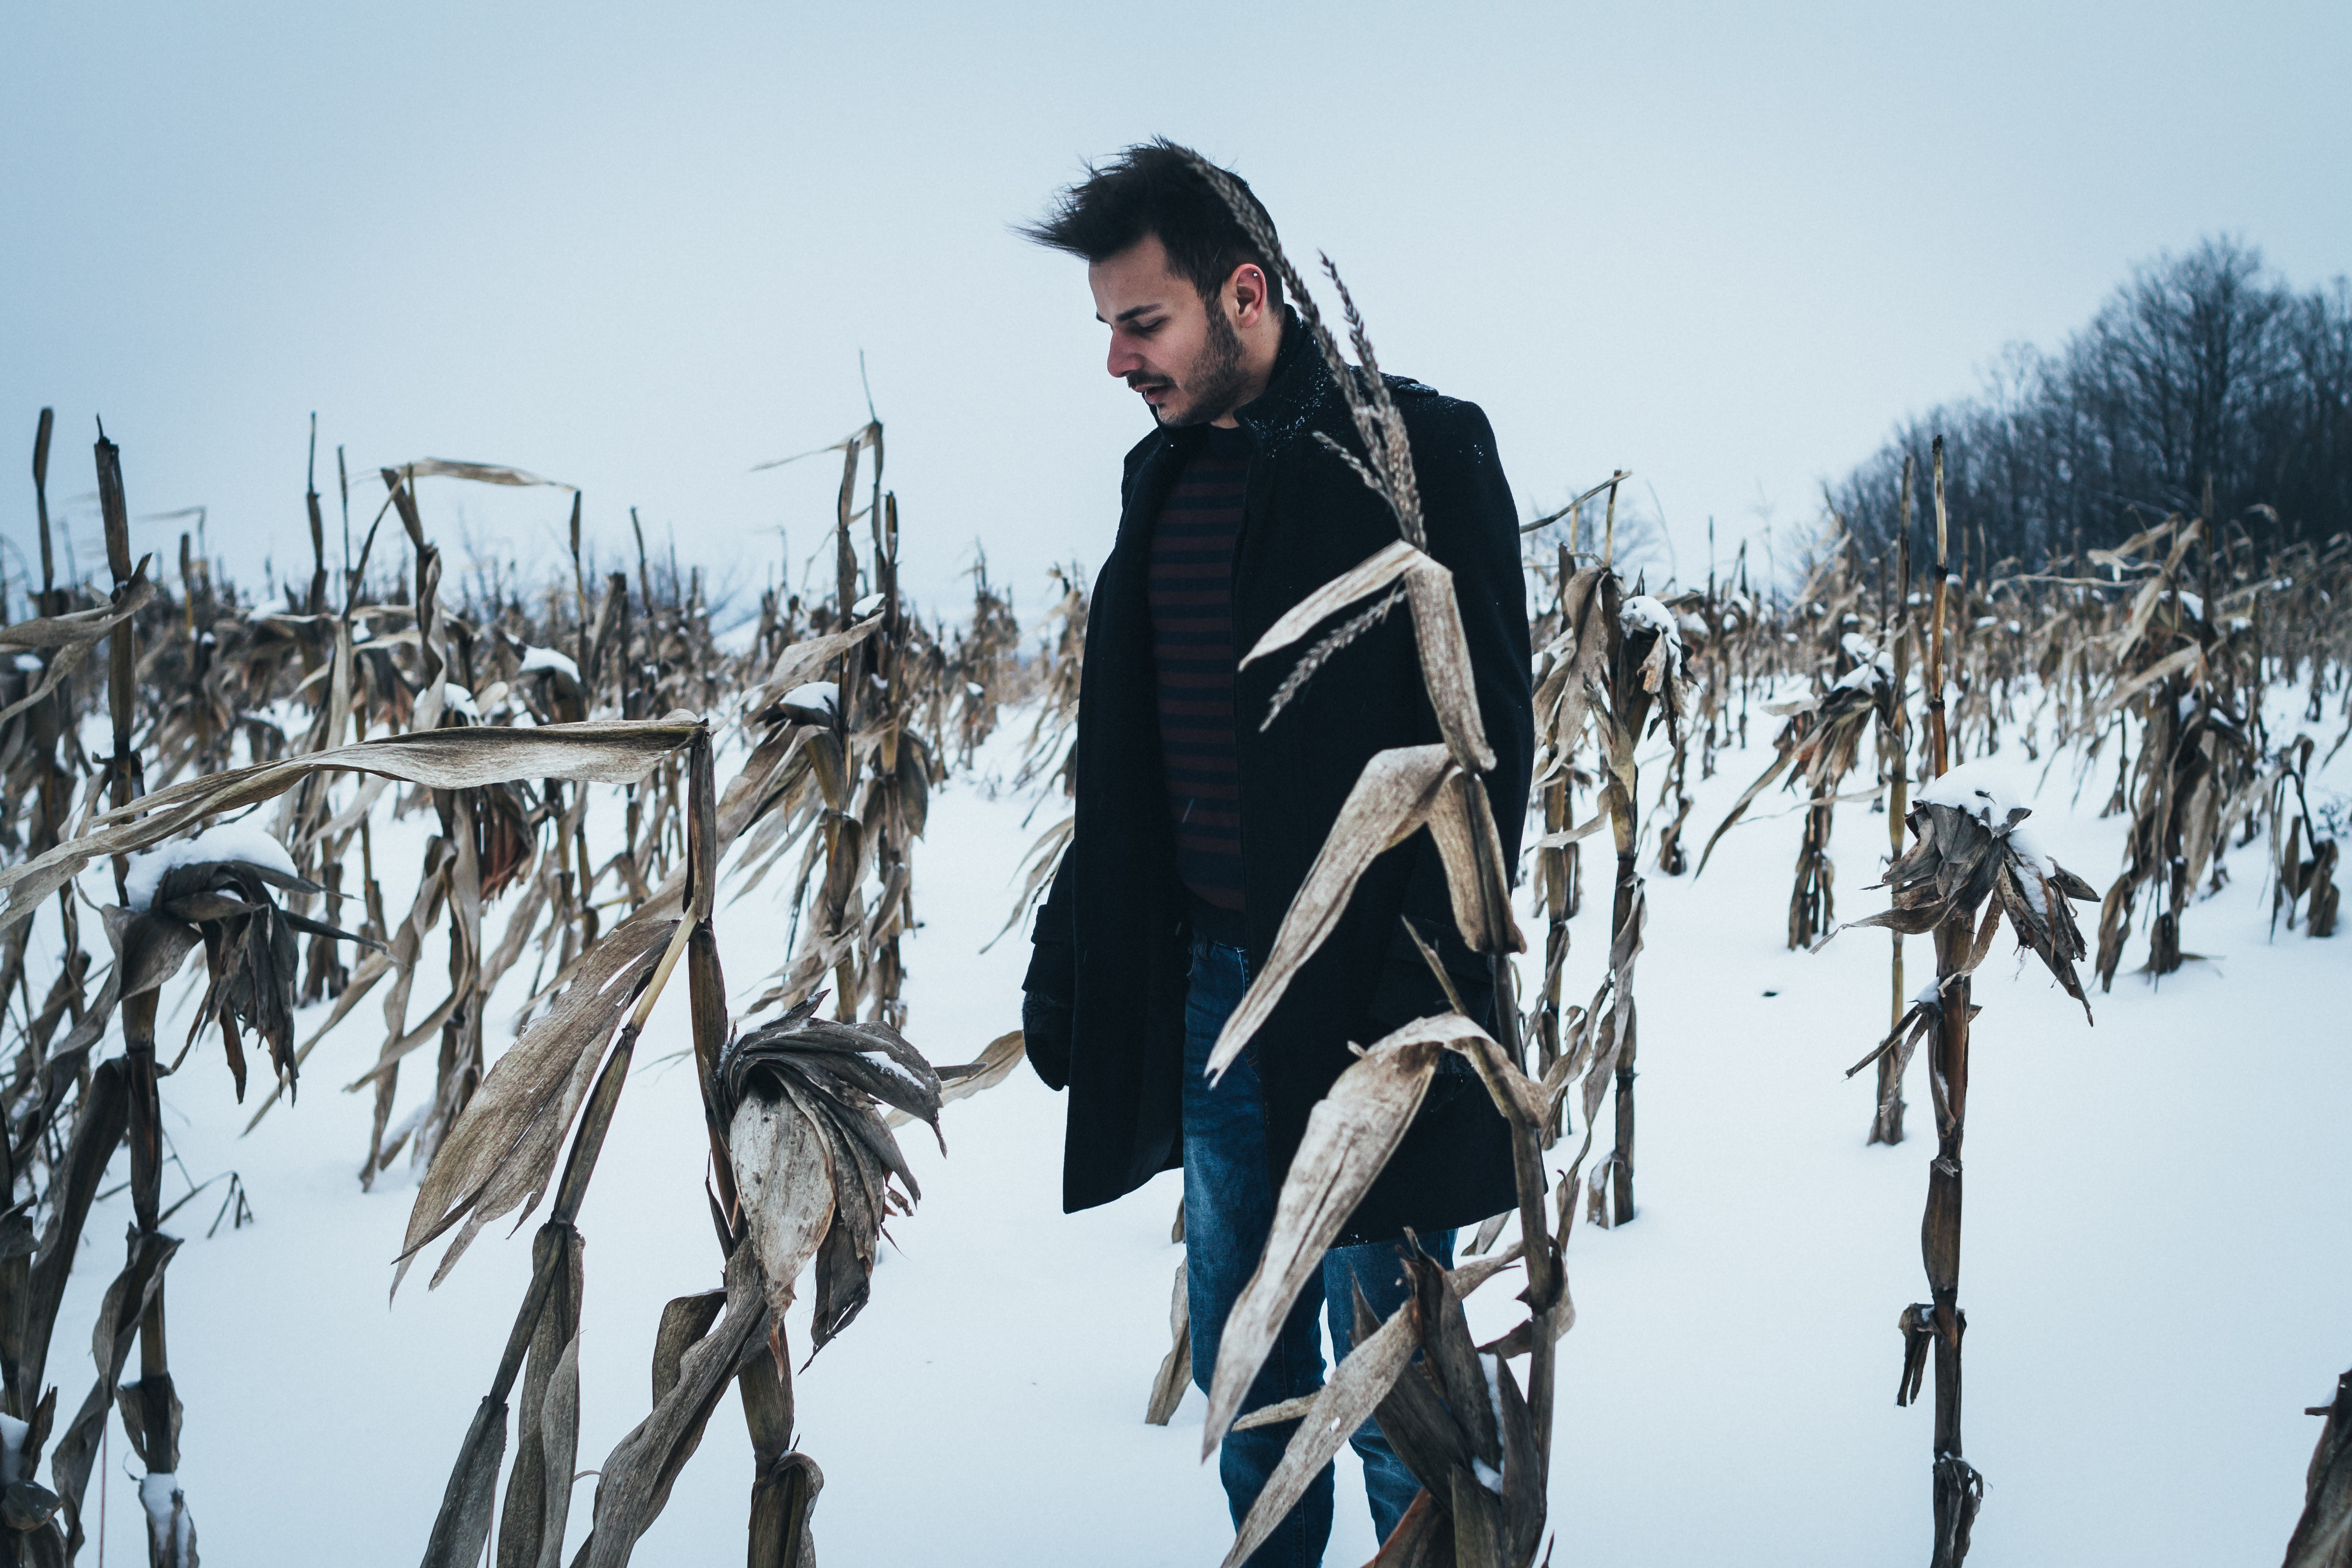 A man in a coat stands in a snowy cornfield in the winter